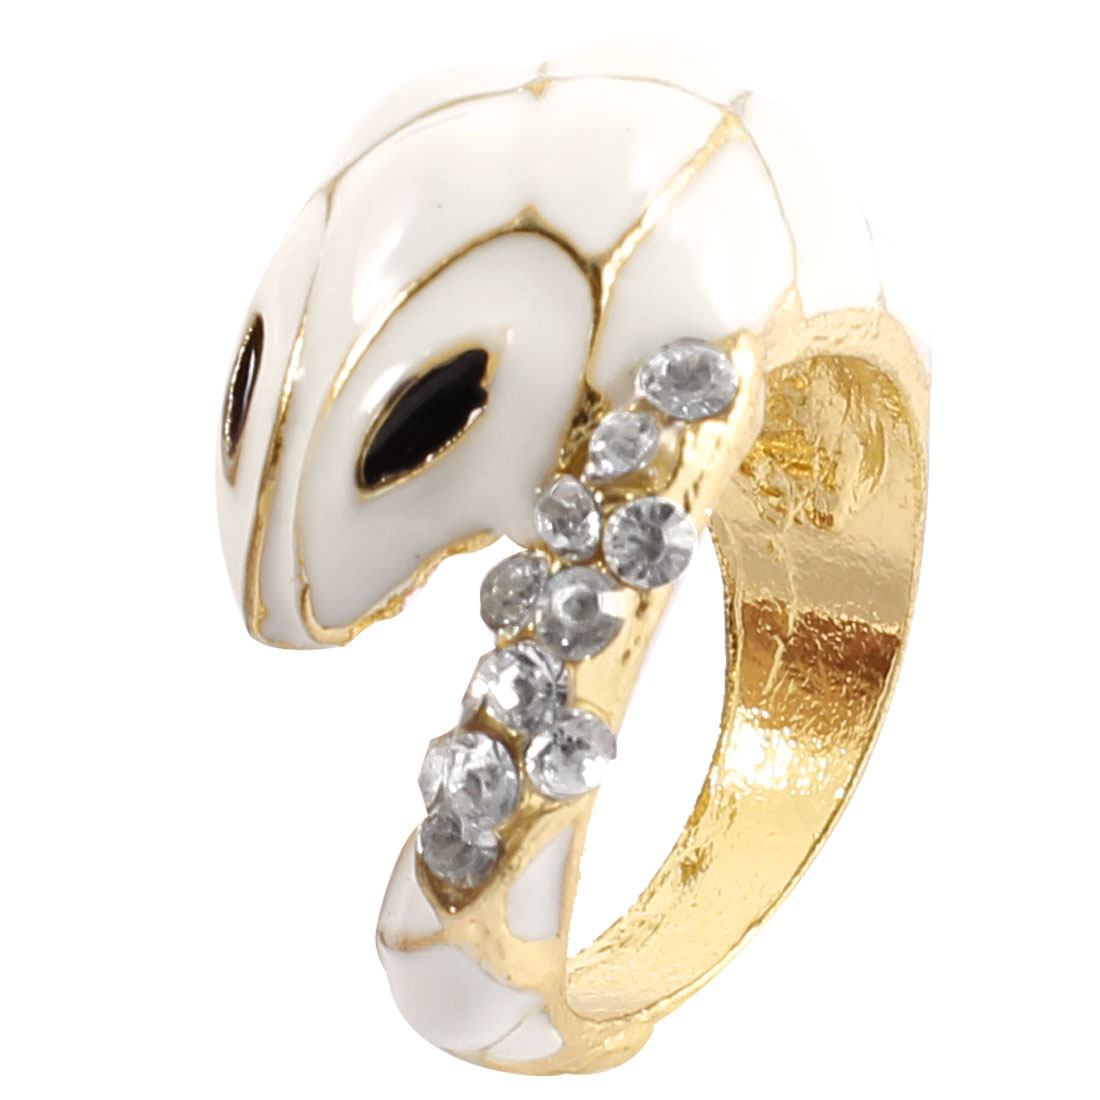 Lady Glitter Rhinestone Inlaid White Snake Detail Gold Tone Metal Finger Ring